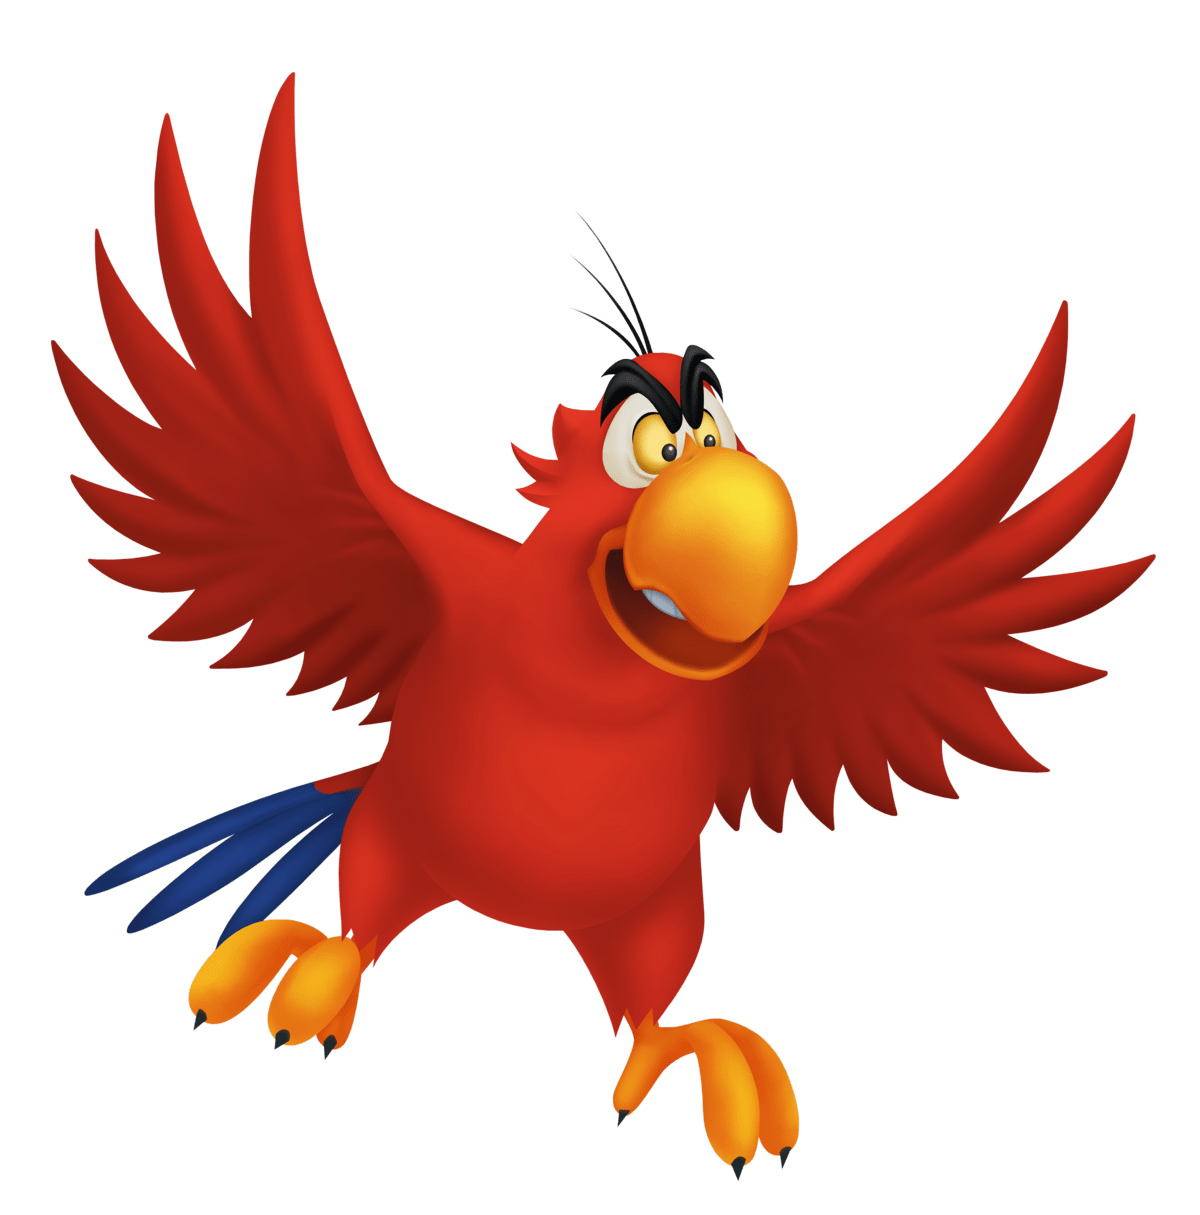 Aladdin Abu Png Iago Kingdom Hearts Wiki The Kingdom Hearts Encyclopedia